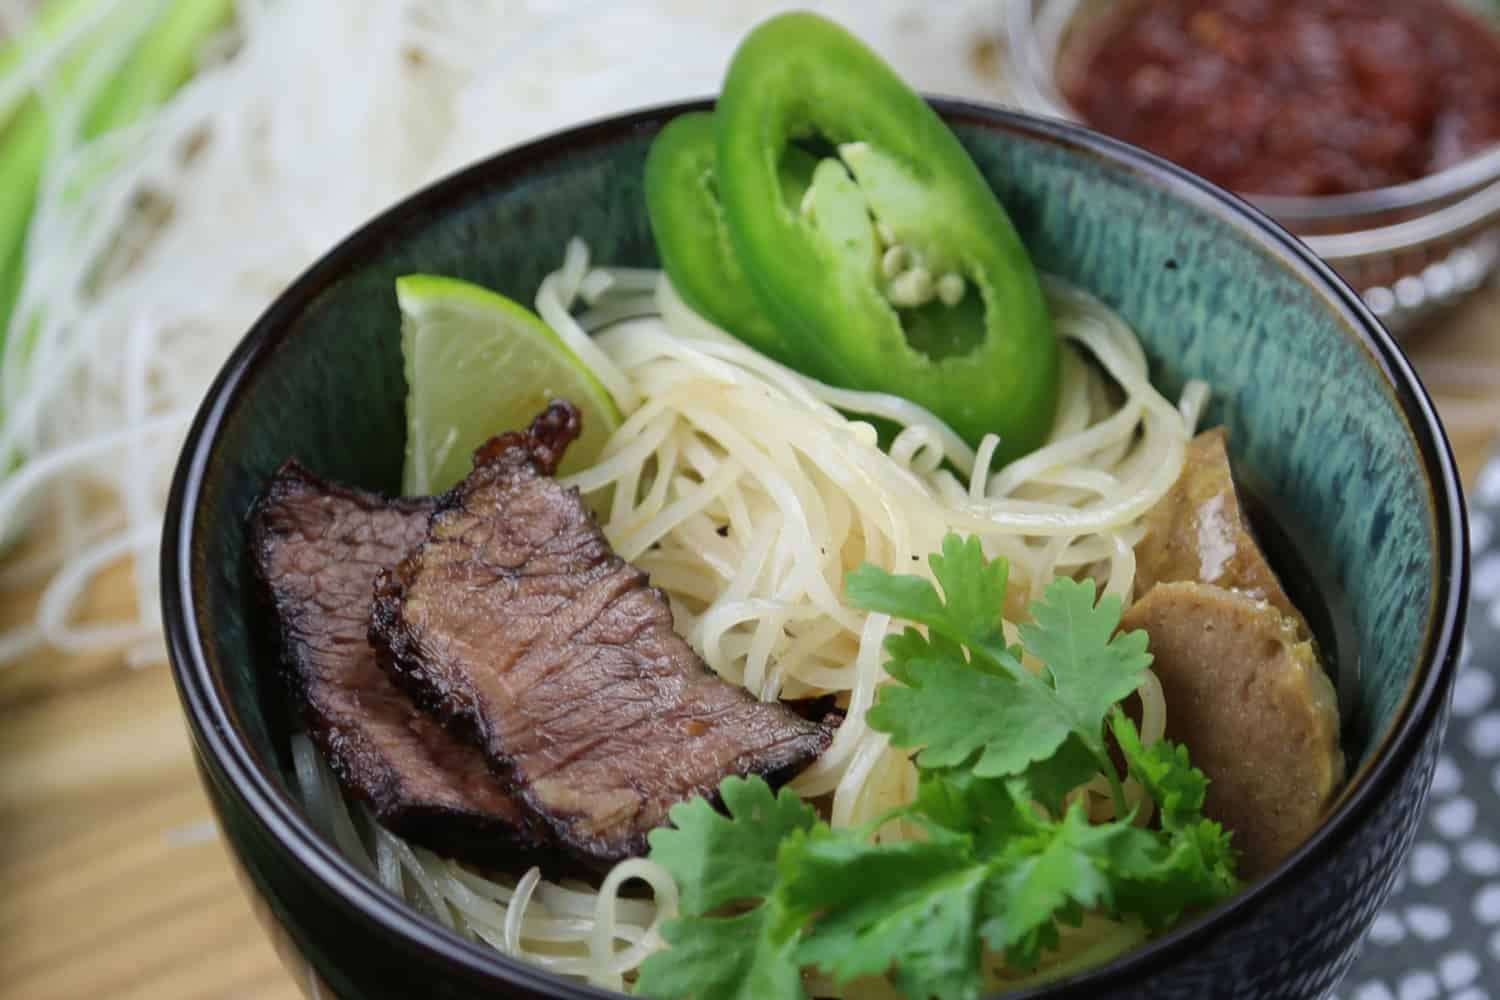 Beef Pho - Global Cuisine, Corporate Dining Food Service Cafe Bowl